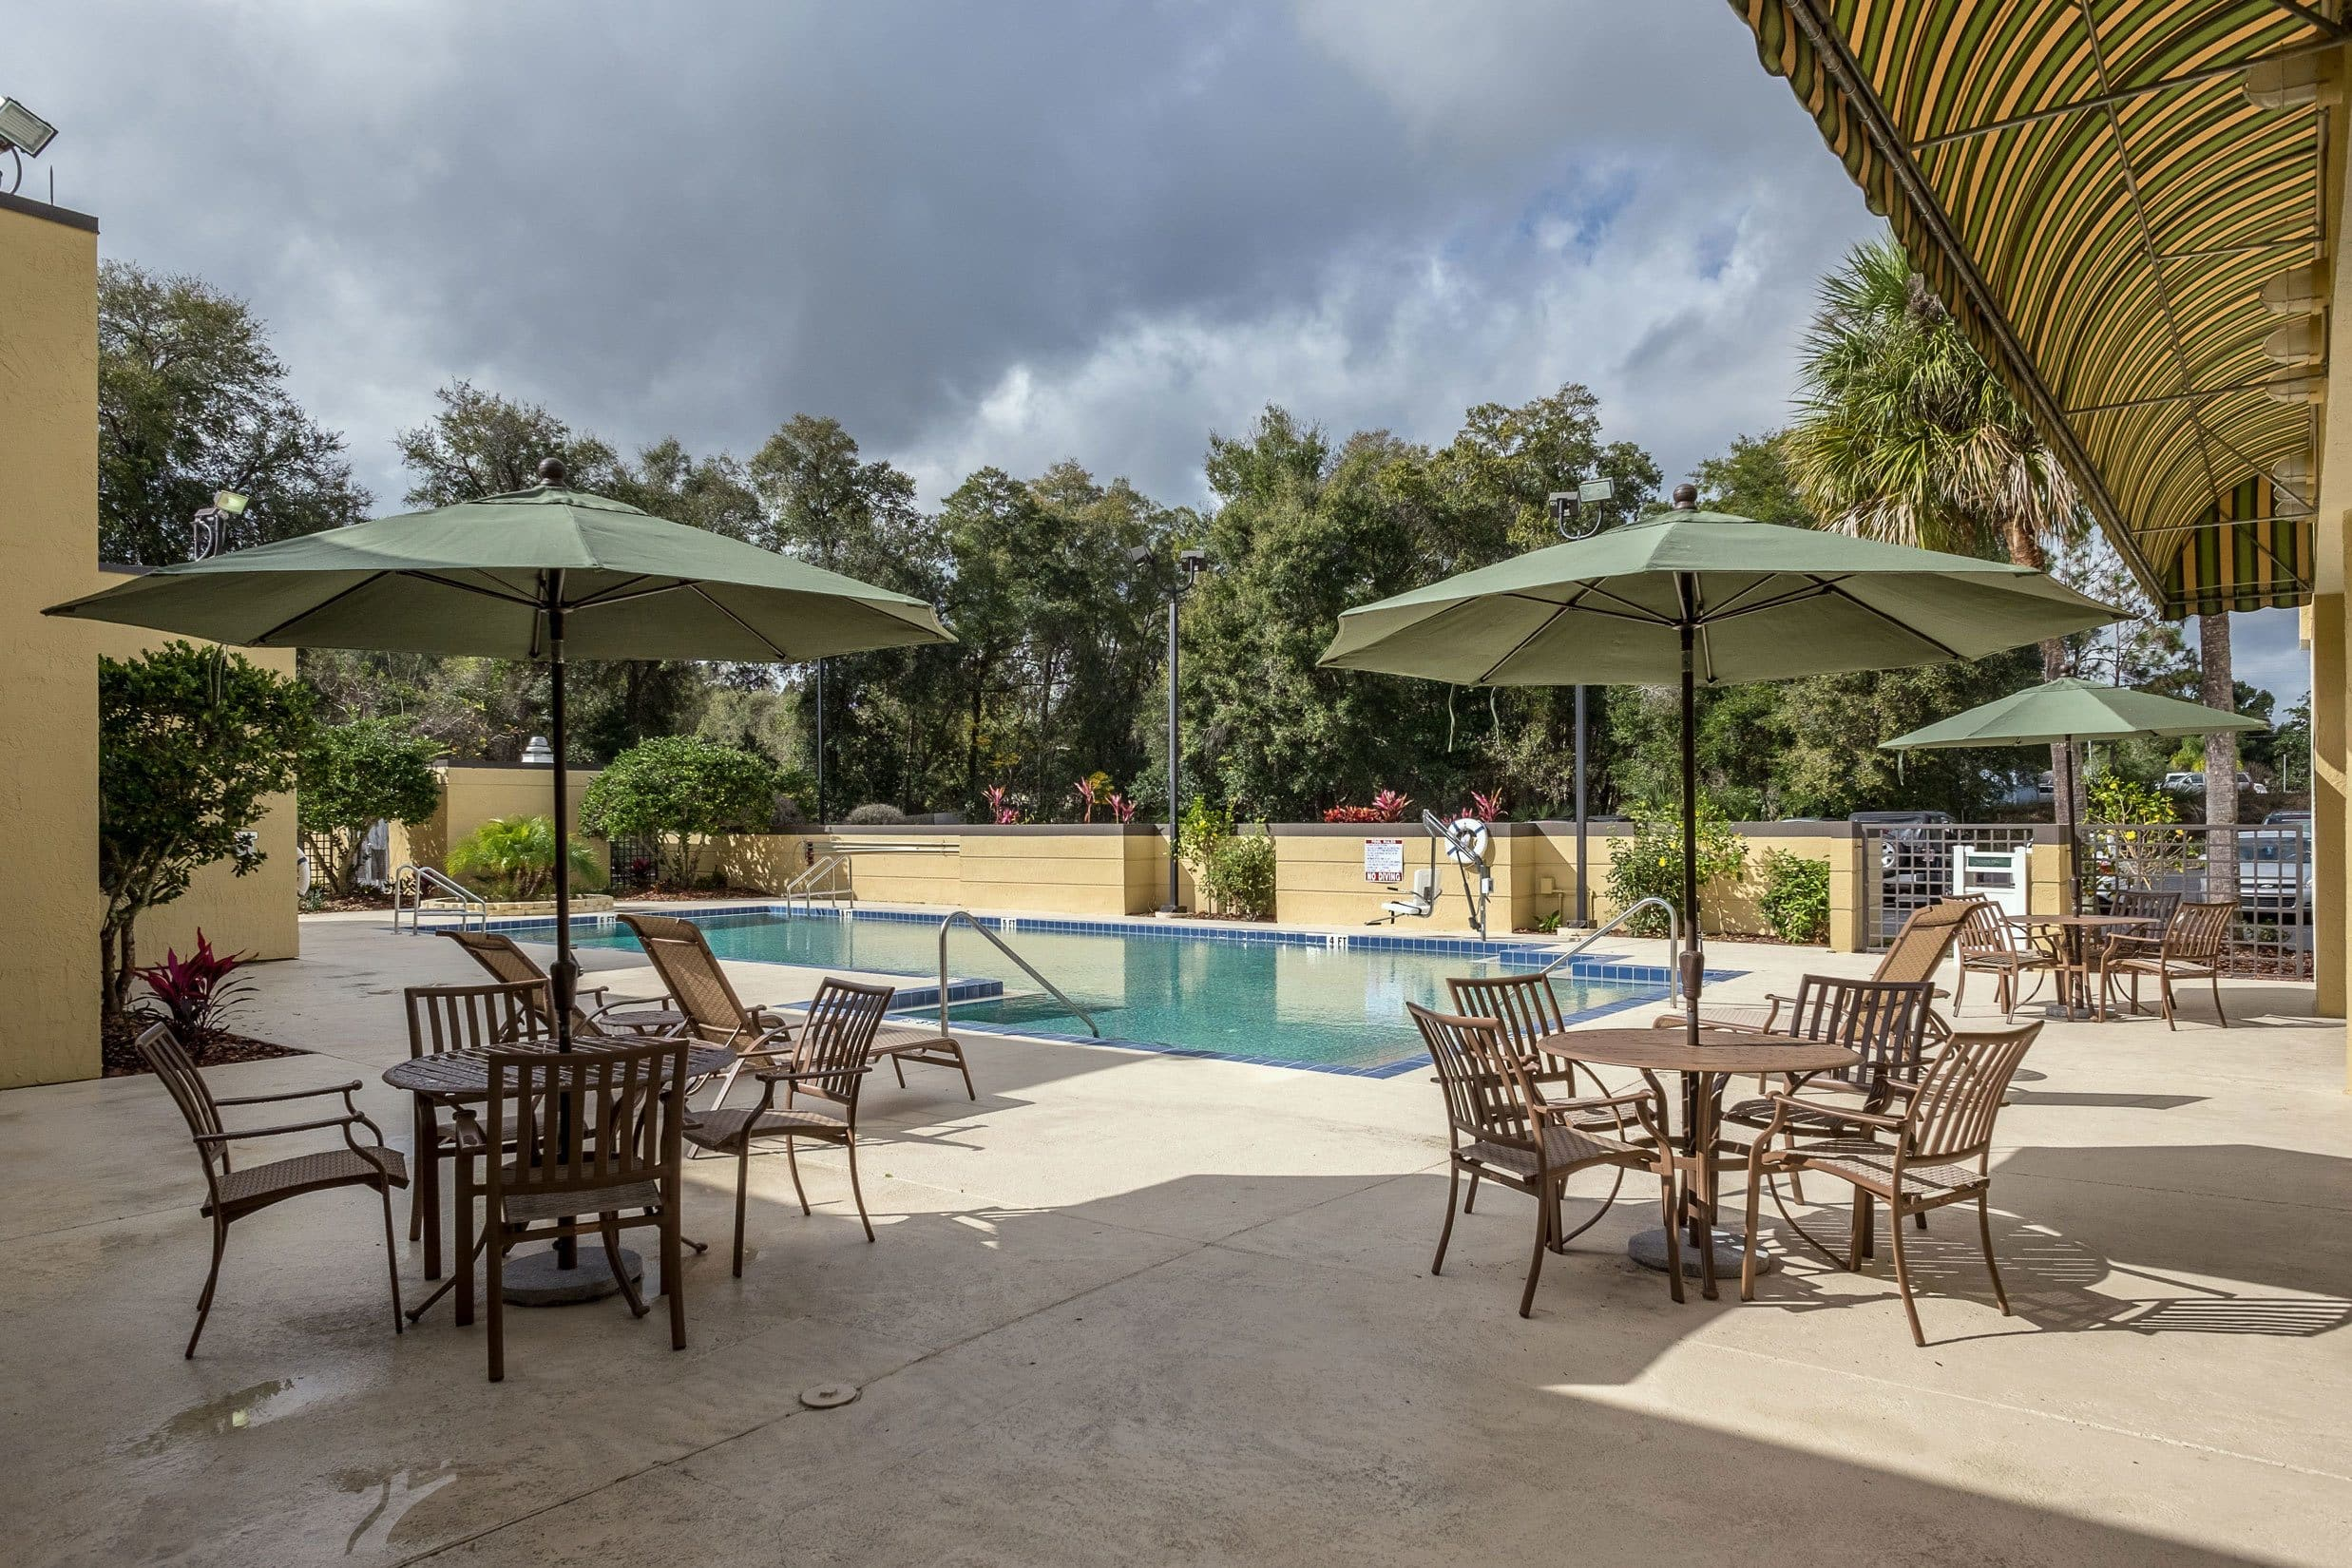 Swimming Pool at Grand Villa of DeLand in DeLand, Florida